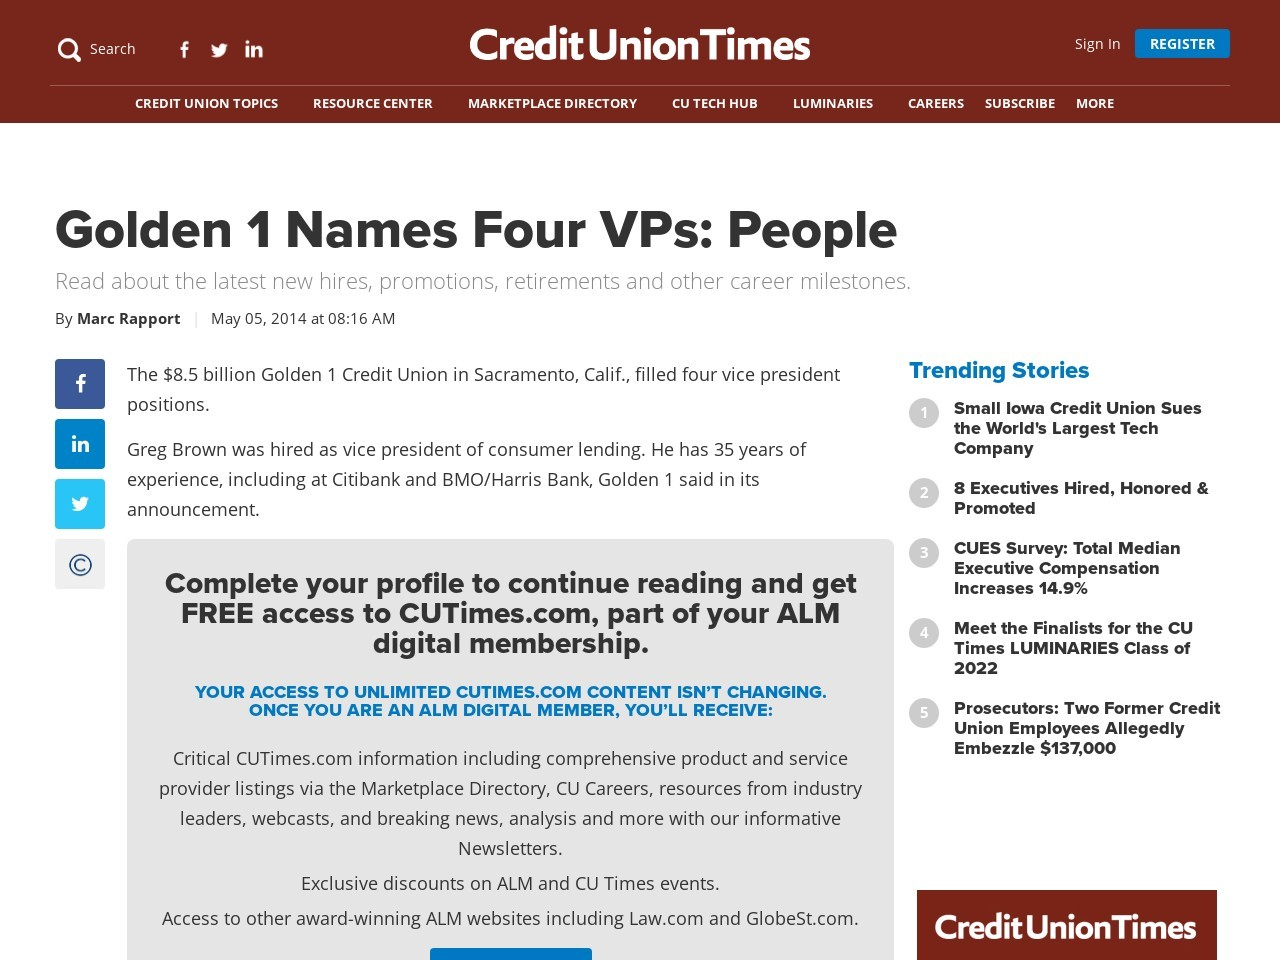 Golden 1 Names Four VPs: People